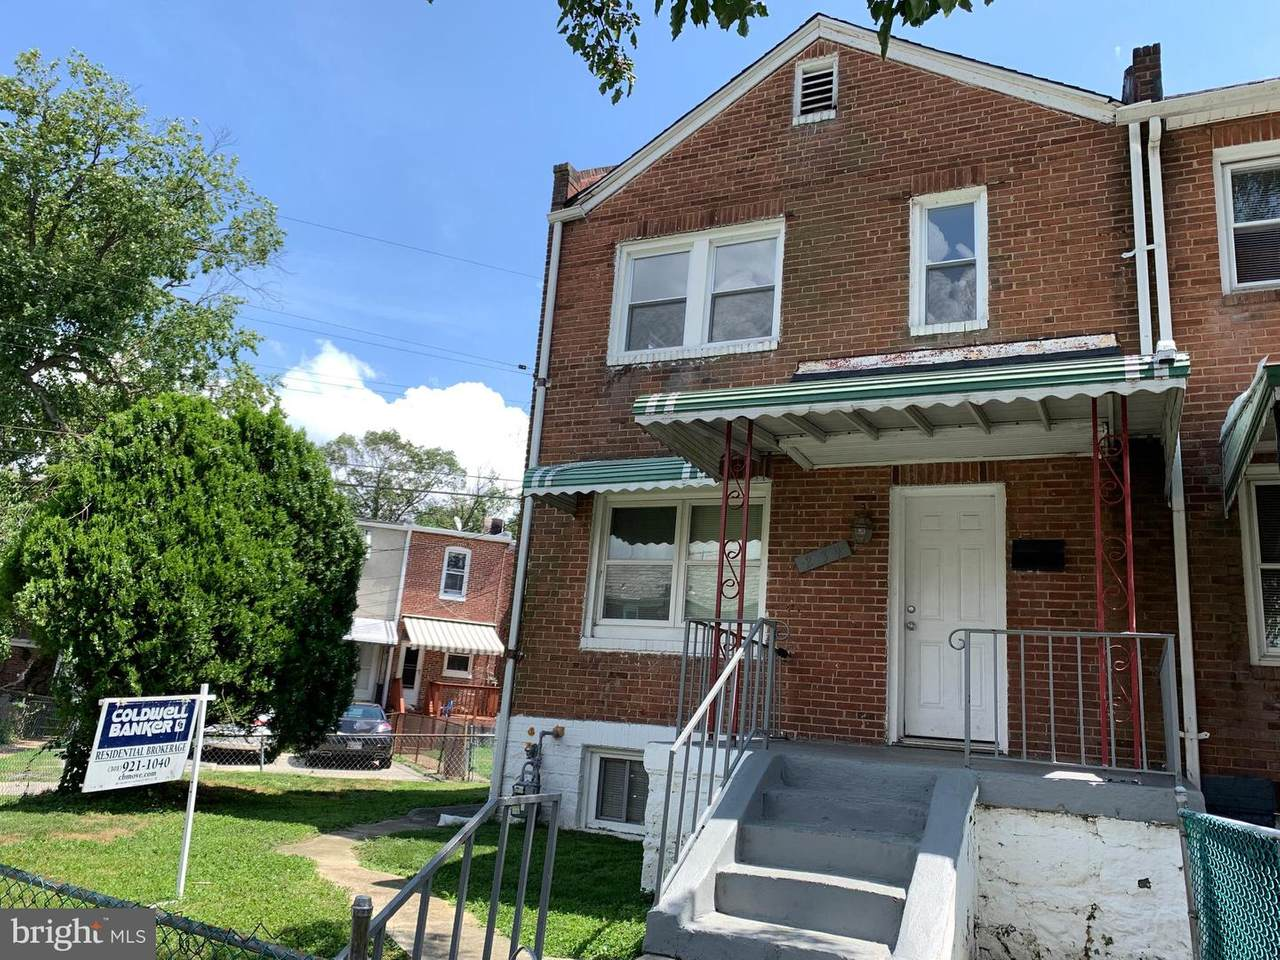 239 North Culver Street - Photo 1